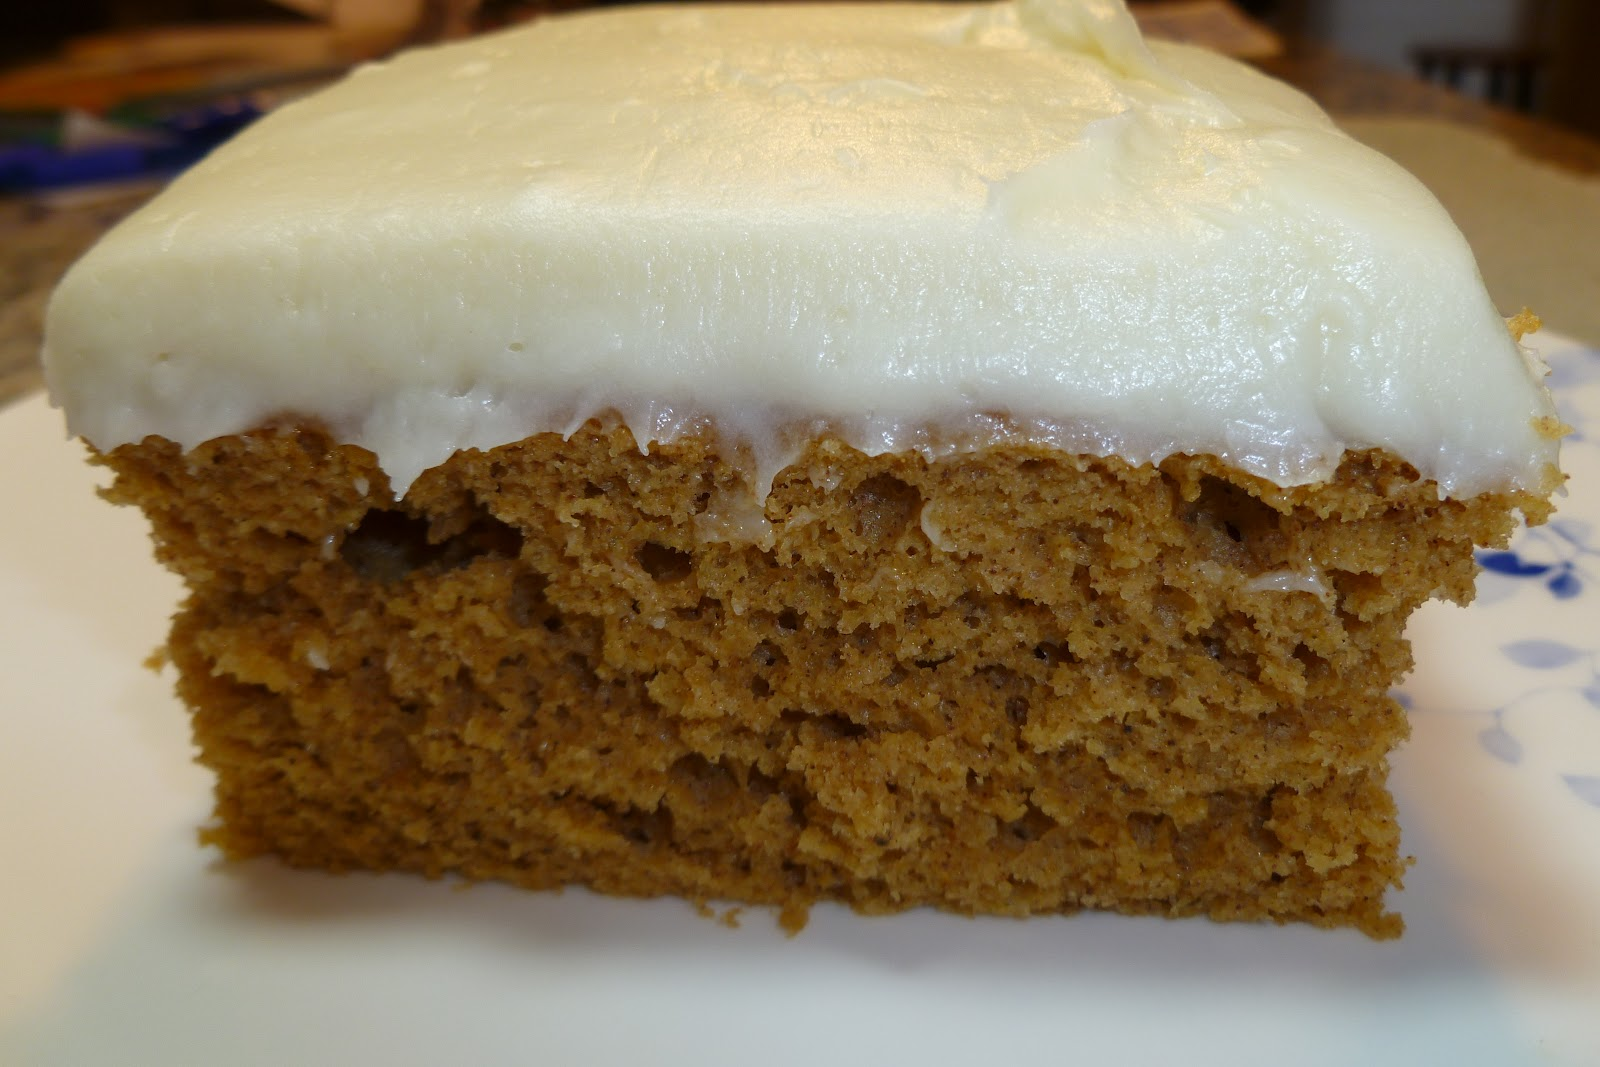 The Pastry Chef's Baking: Pumpkin Spice Cake